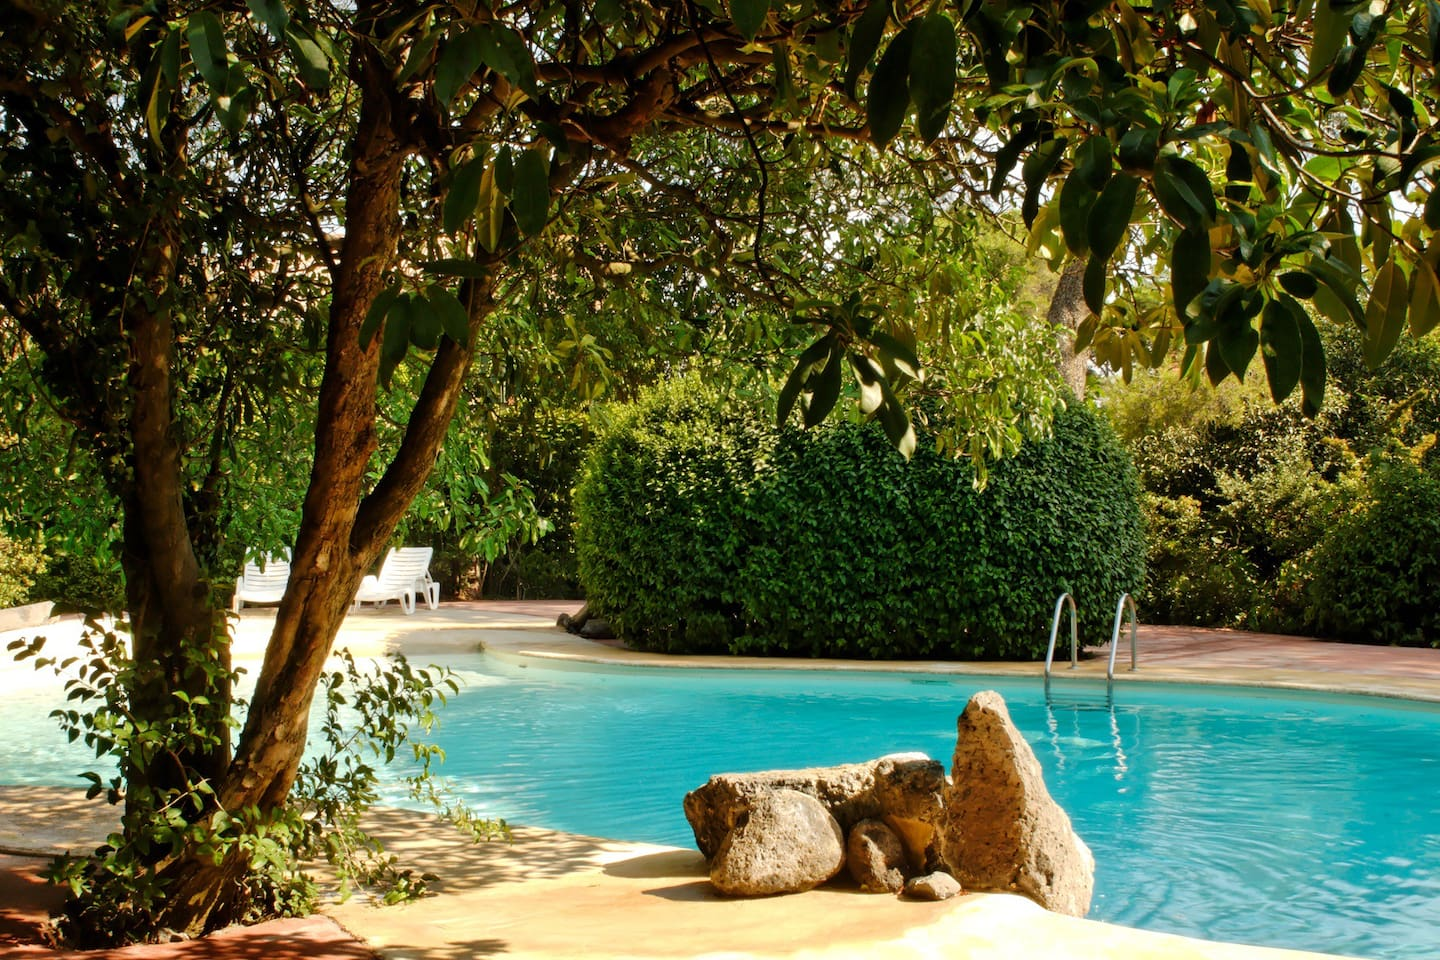 One of the pools shared by Beaumont villas